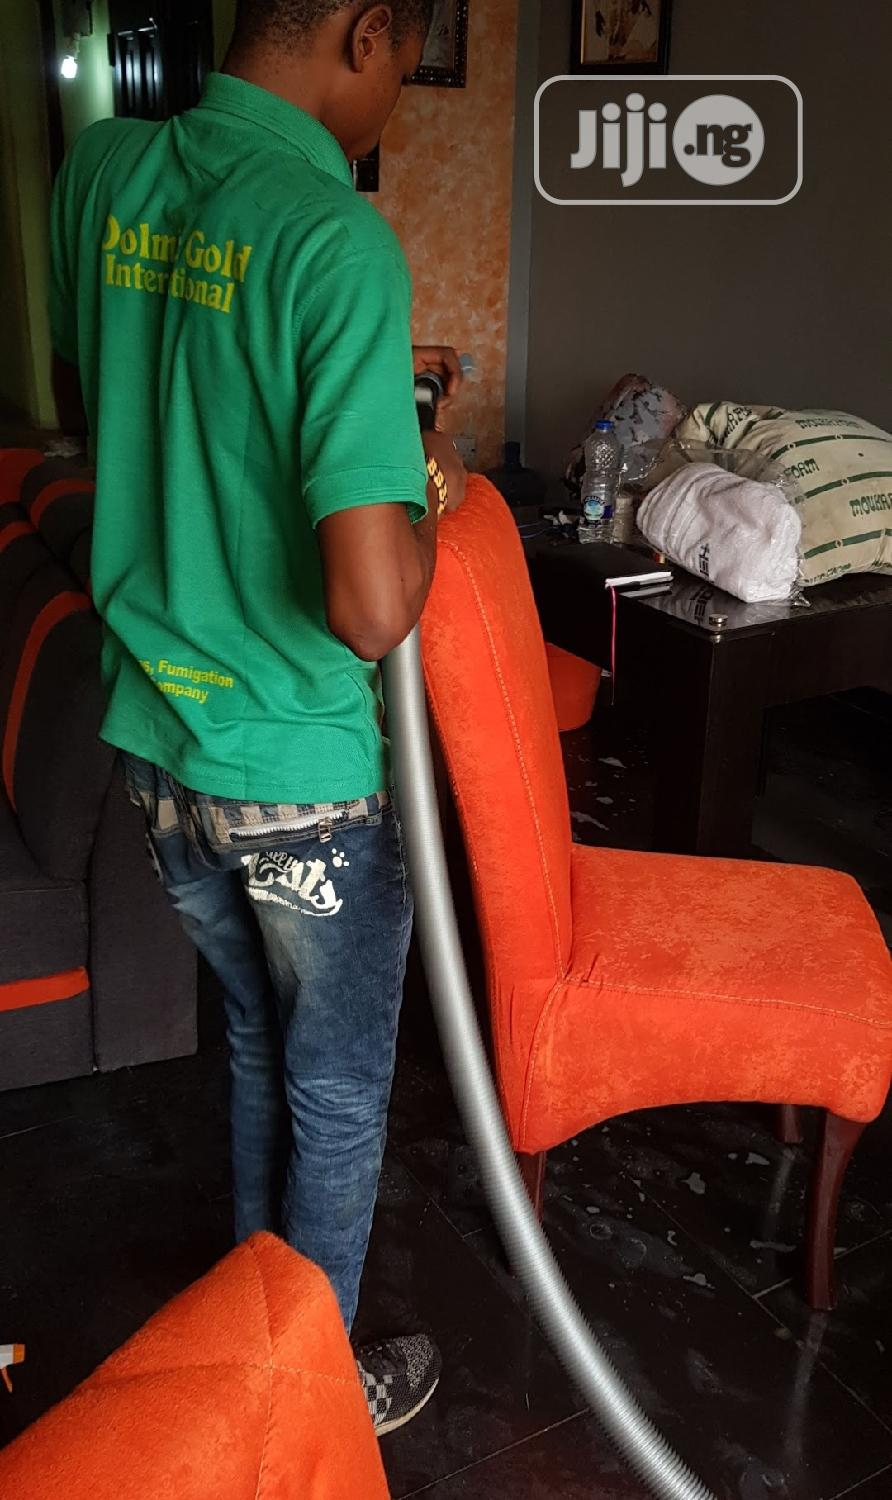 Upholstery, Couch, Sofa, Chair, Cleaning Services